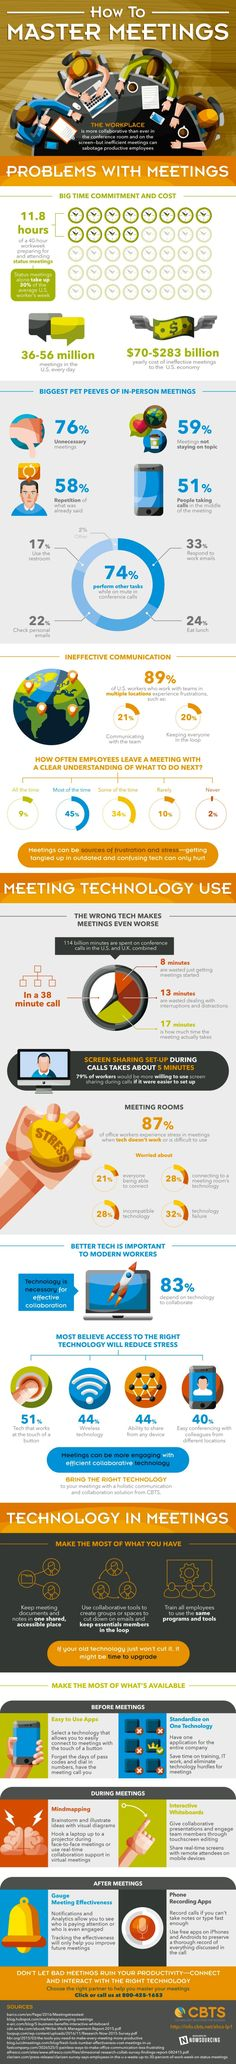 checklist-for-effective-meetings Effective Meetings Pinterest - effectively facilitate meeting